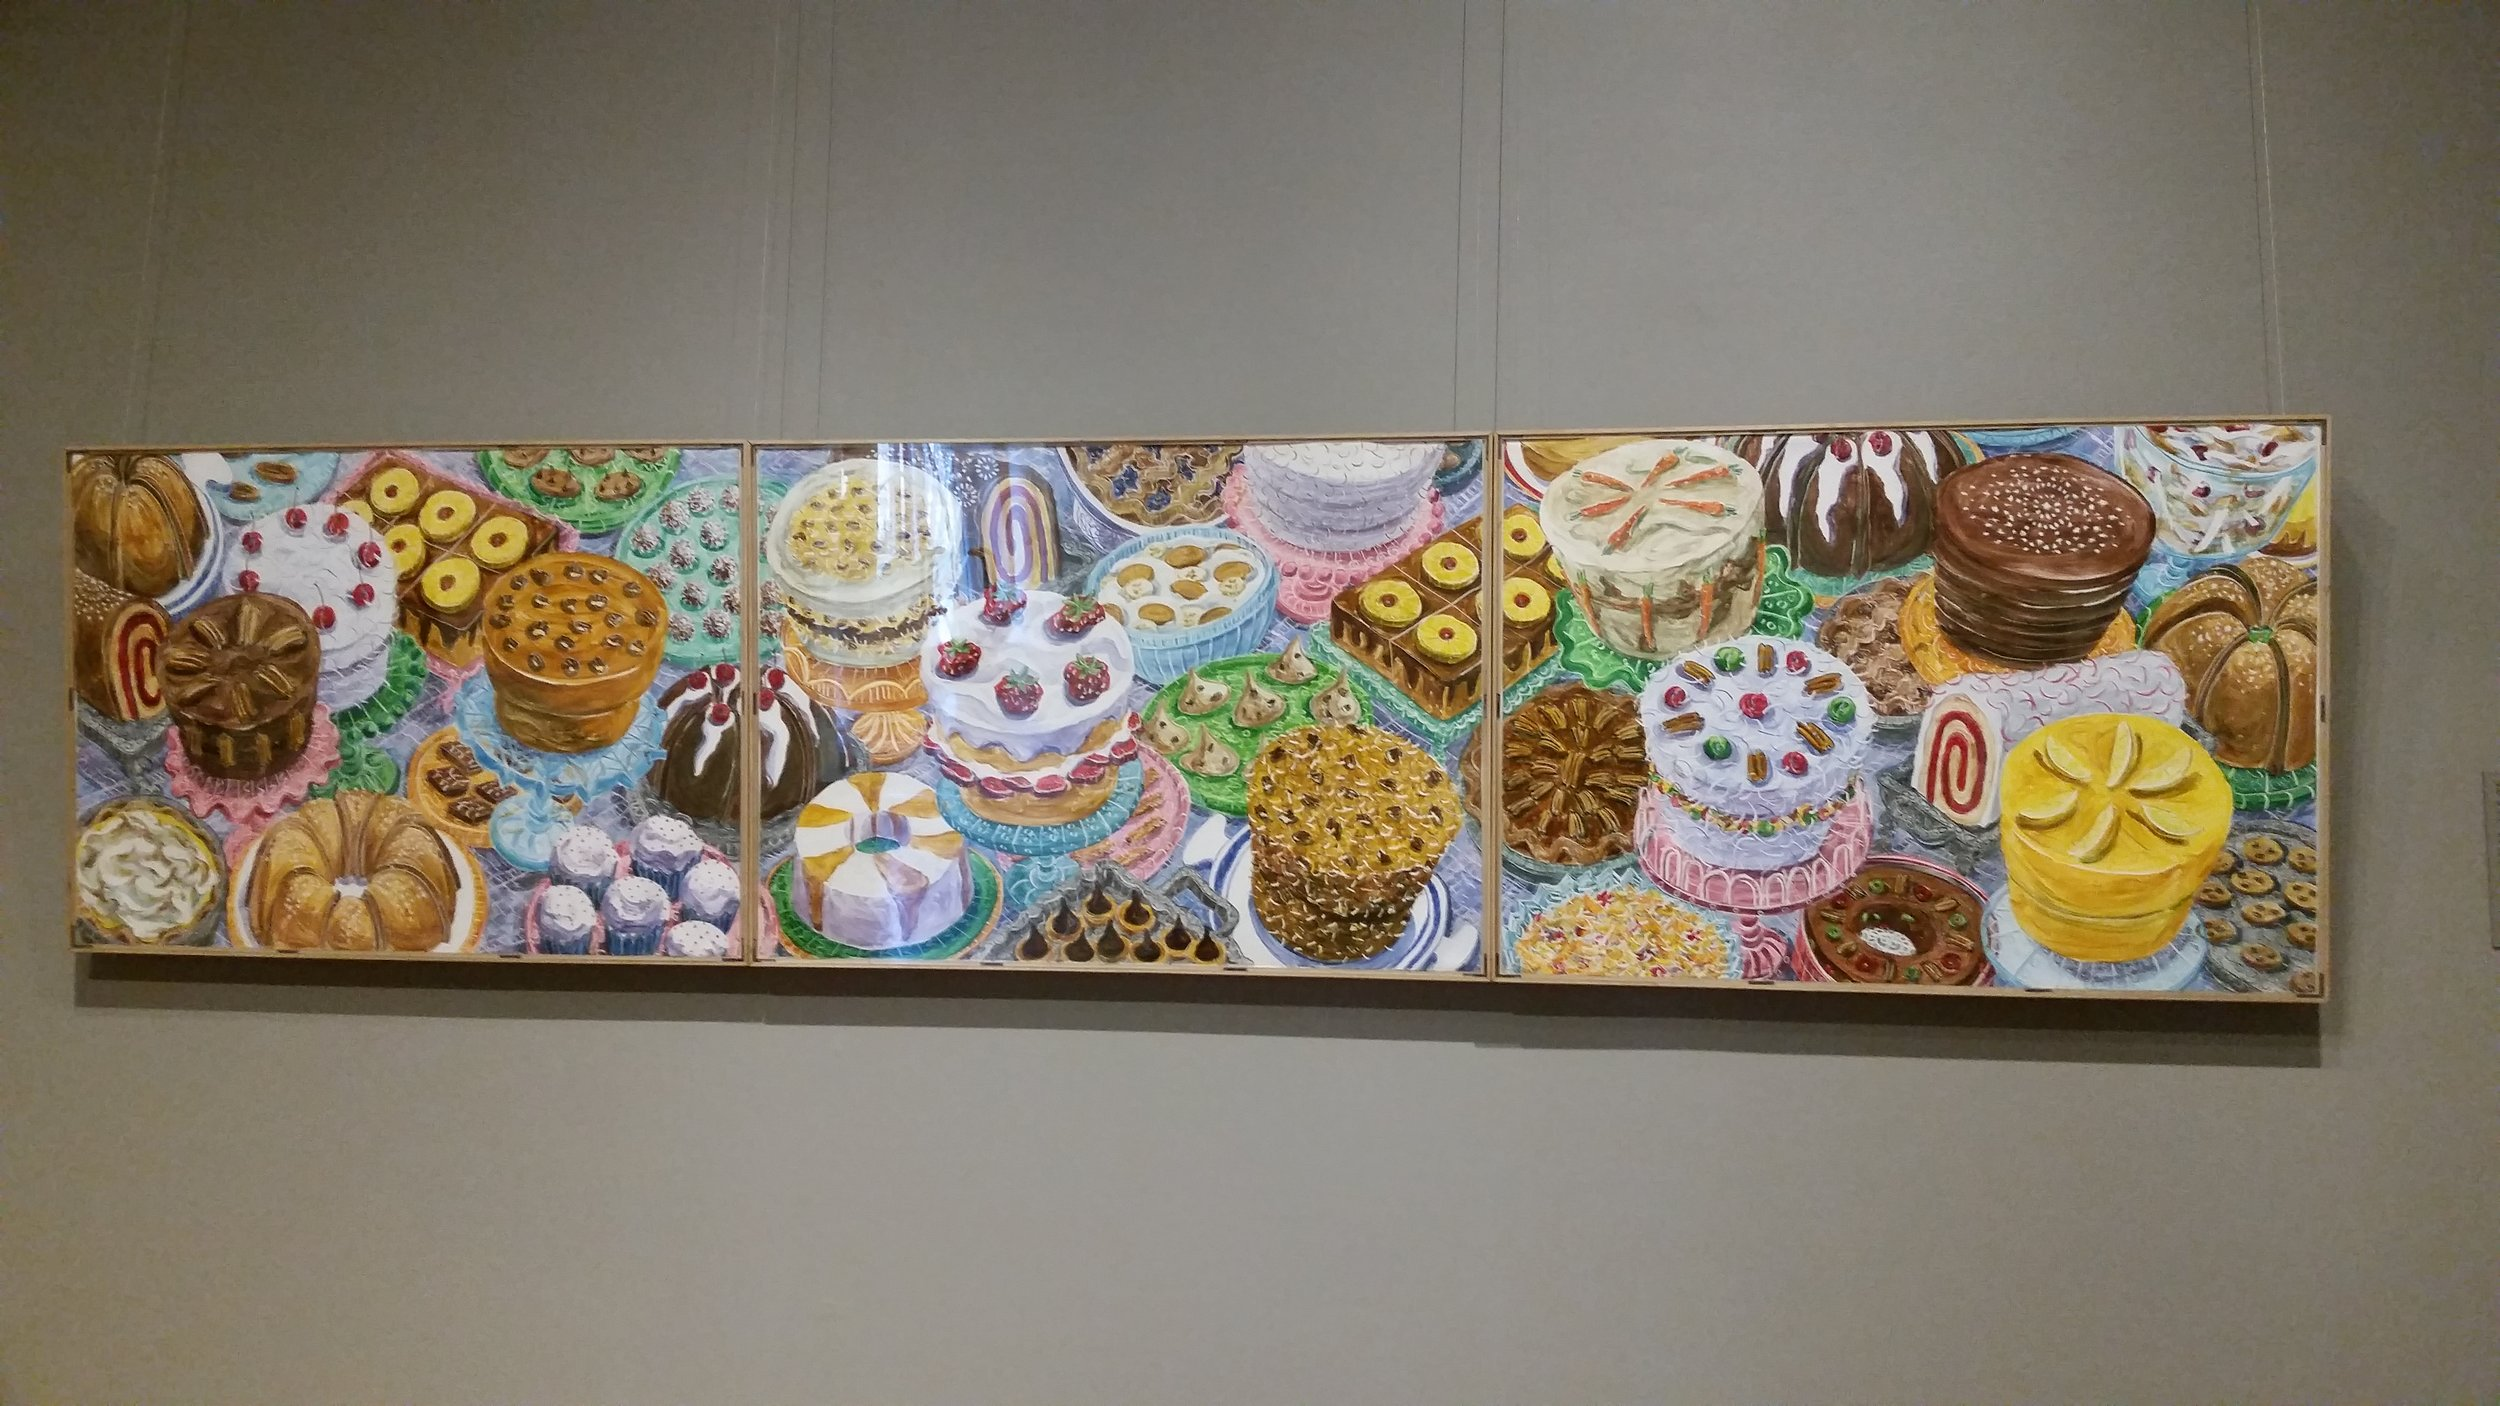 This painting,  Just Desserts by Betty Bivins Edwards, hangs at the Telfair Museum. I feel its a pretty close representation of everything I ate while visiting Savannah with my friend Mary!